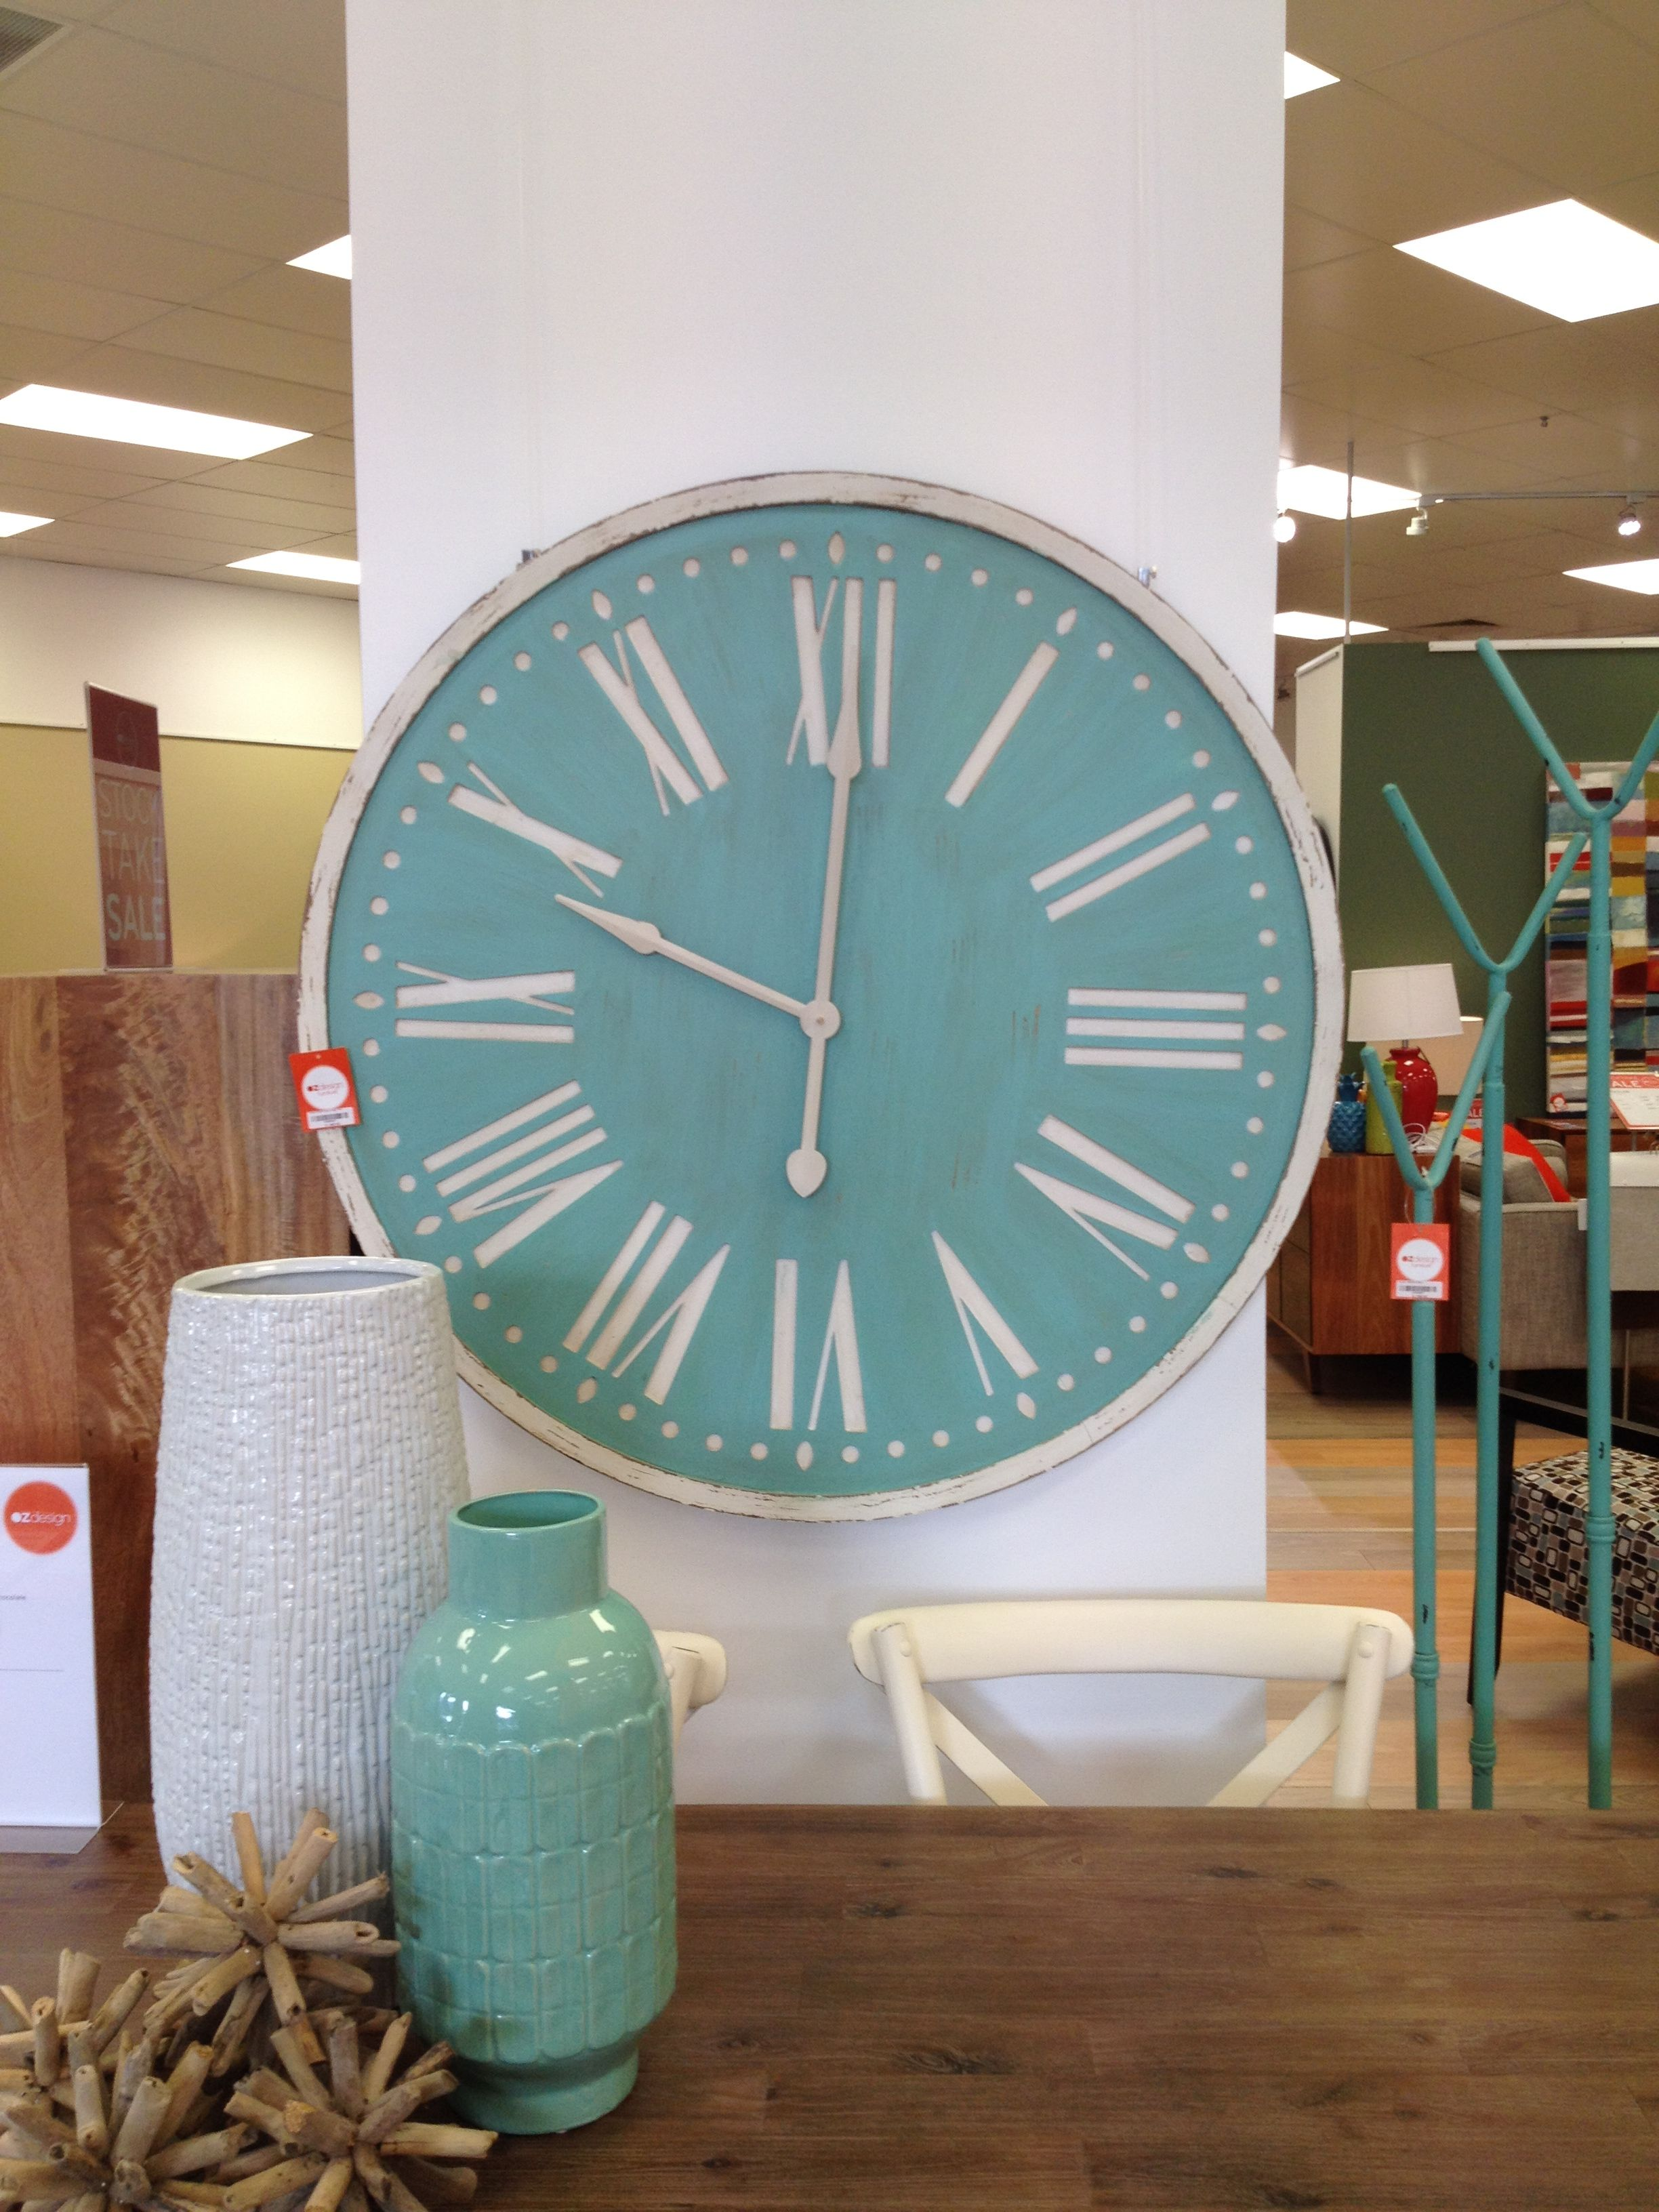 Oversized clock from OzDesign